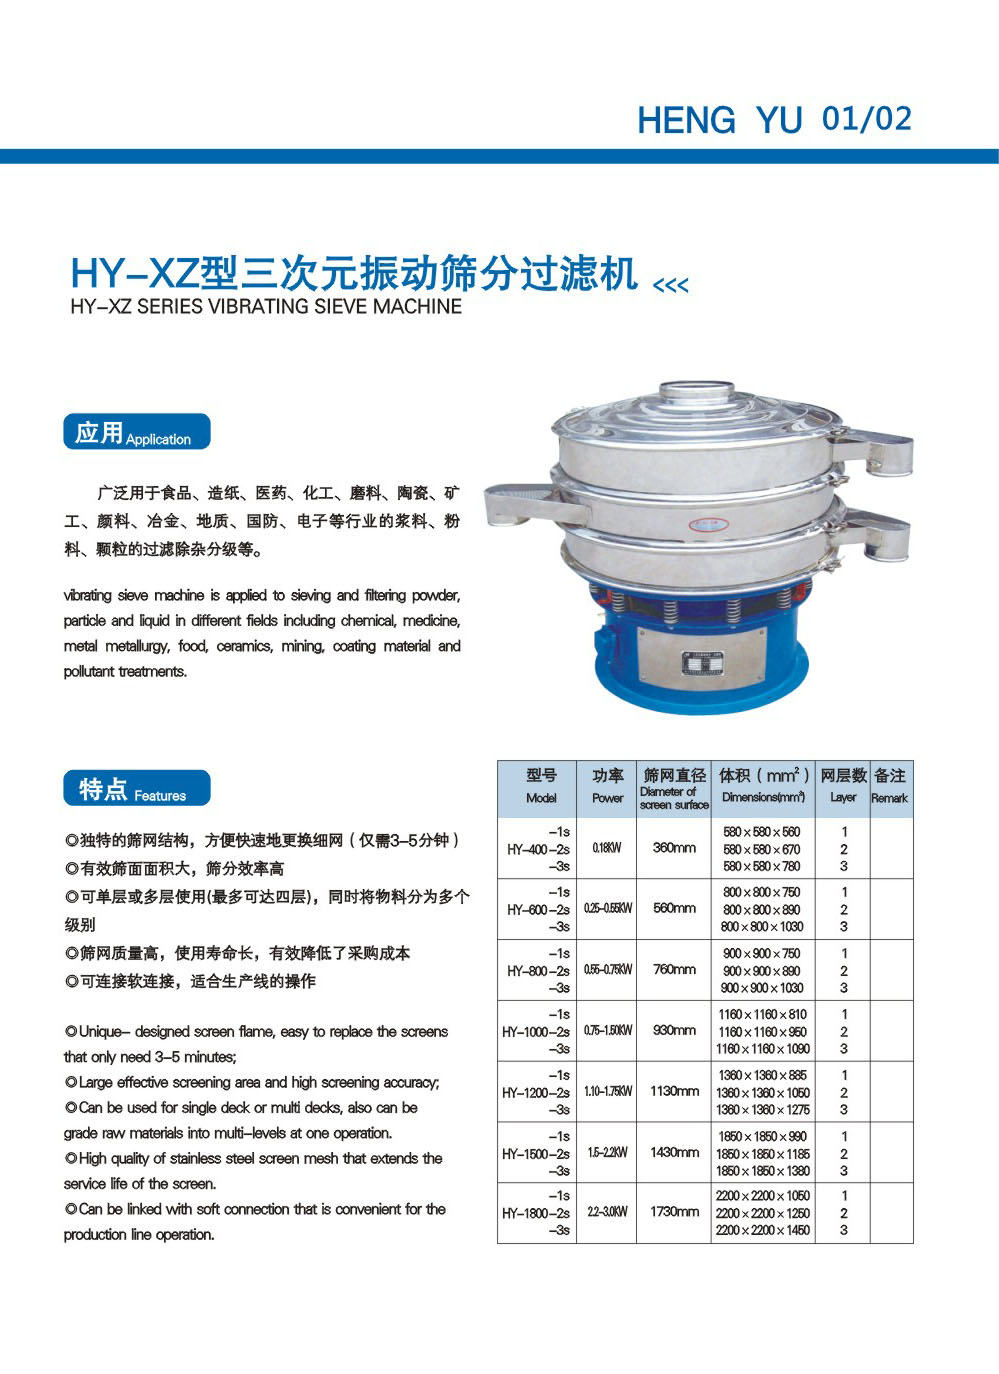 Xinxiang Hengyu Machinery Product Catalog